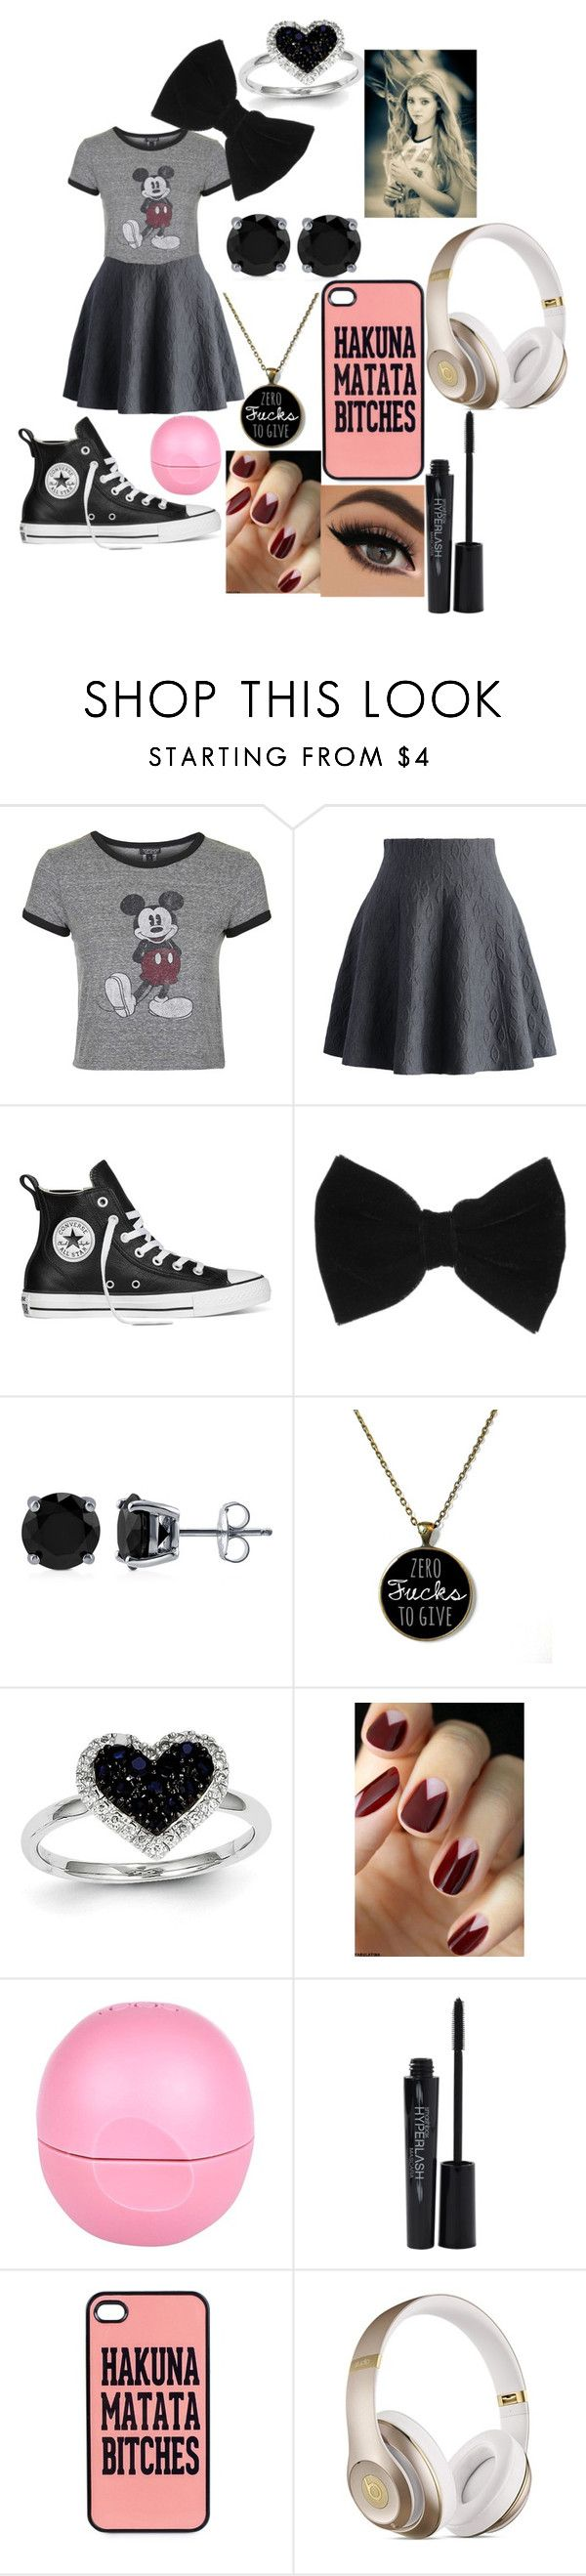 """""""Celebrity Family Roleplay"""" by lizzie-bug on Polyvore featuring Topshop, Chicwish, Converse, claire's, BERRICLE, Kevin Jewelers, River Island, Smashbox, JFR and Beats by Dr. Dre"""